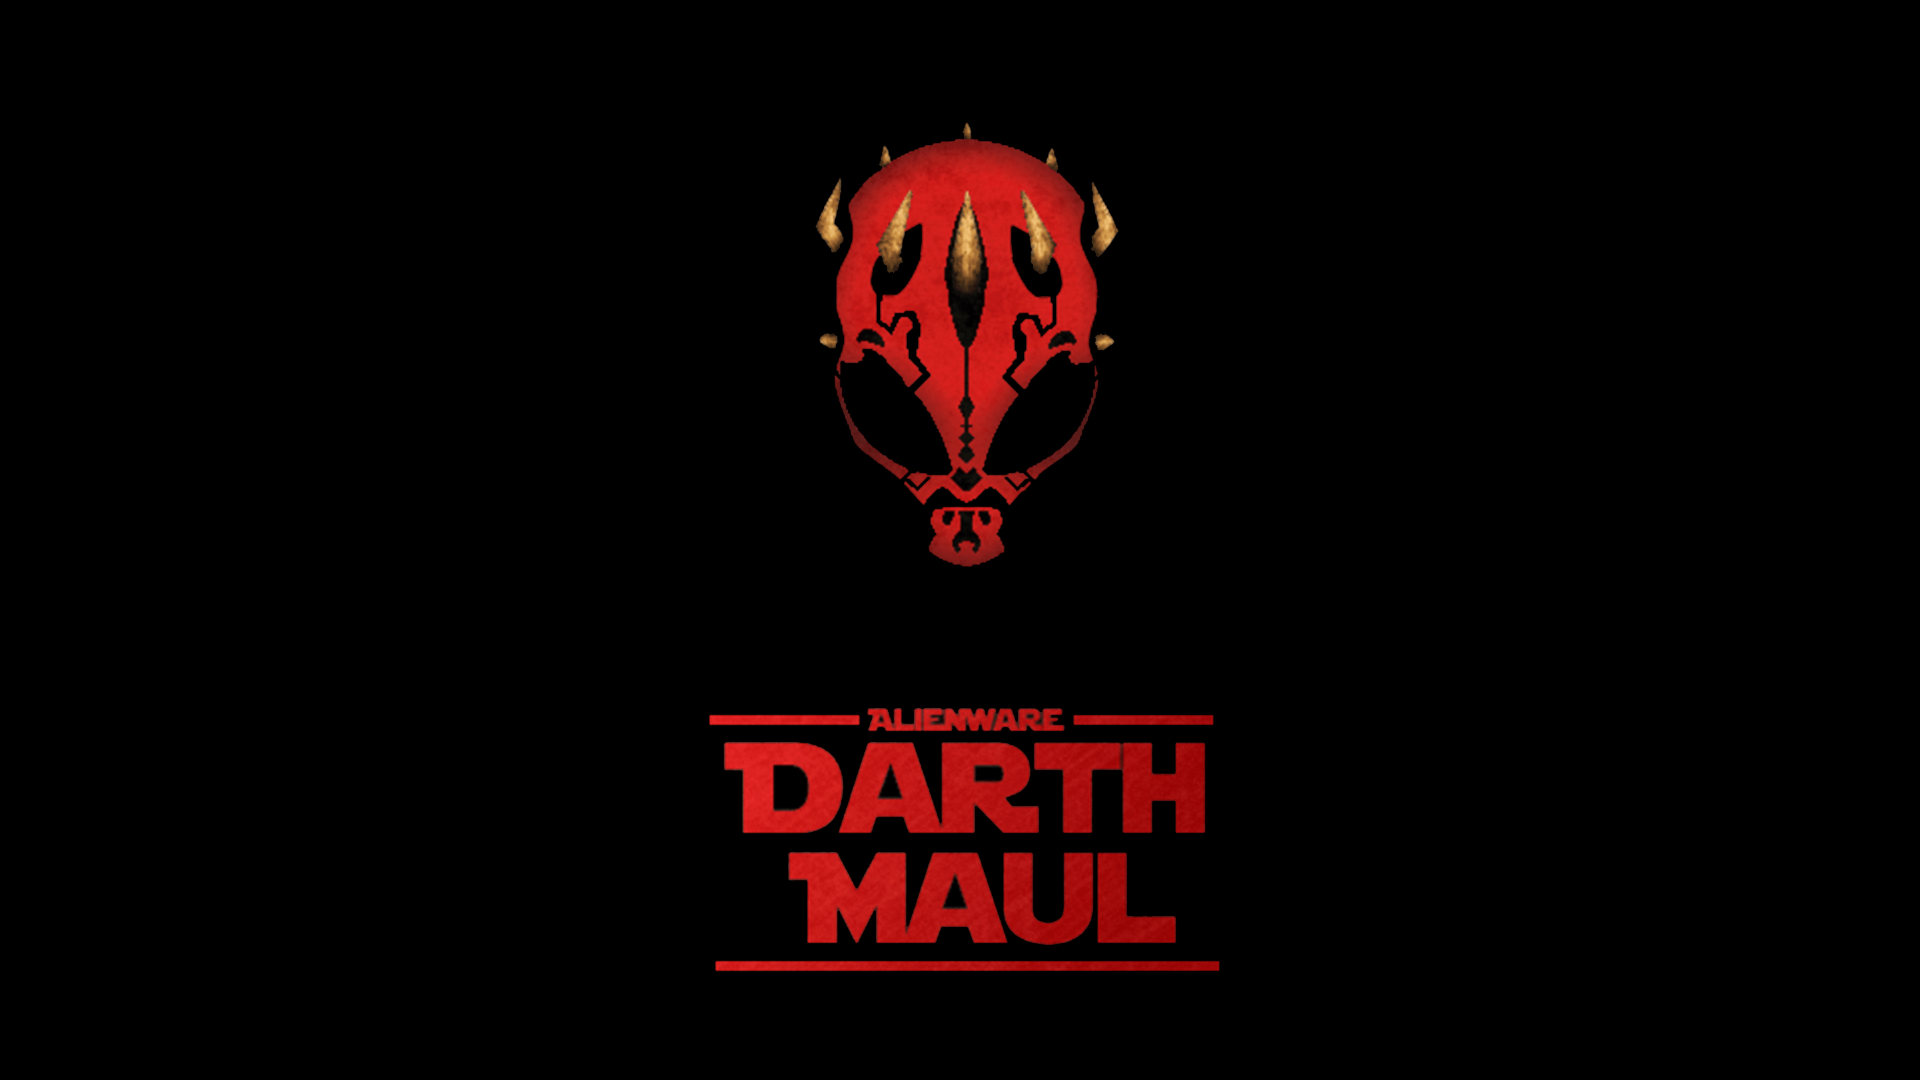 DeviantArt: More Like Darth Maul Alienware Wallpapers by Zman110